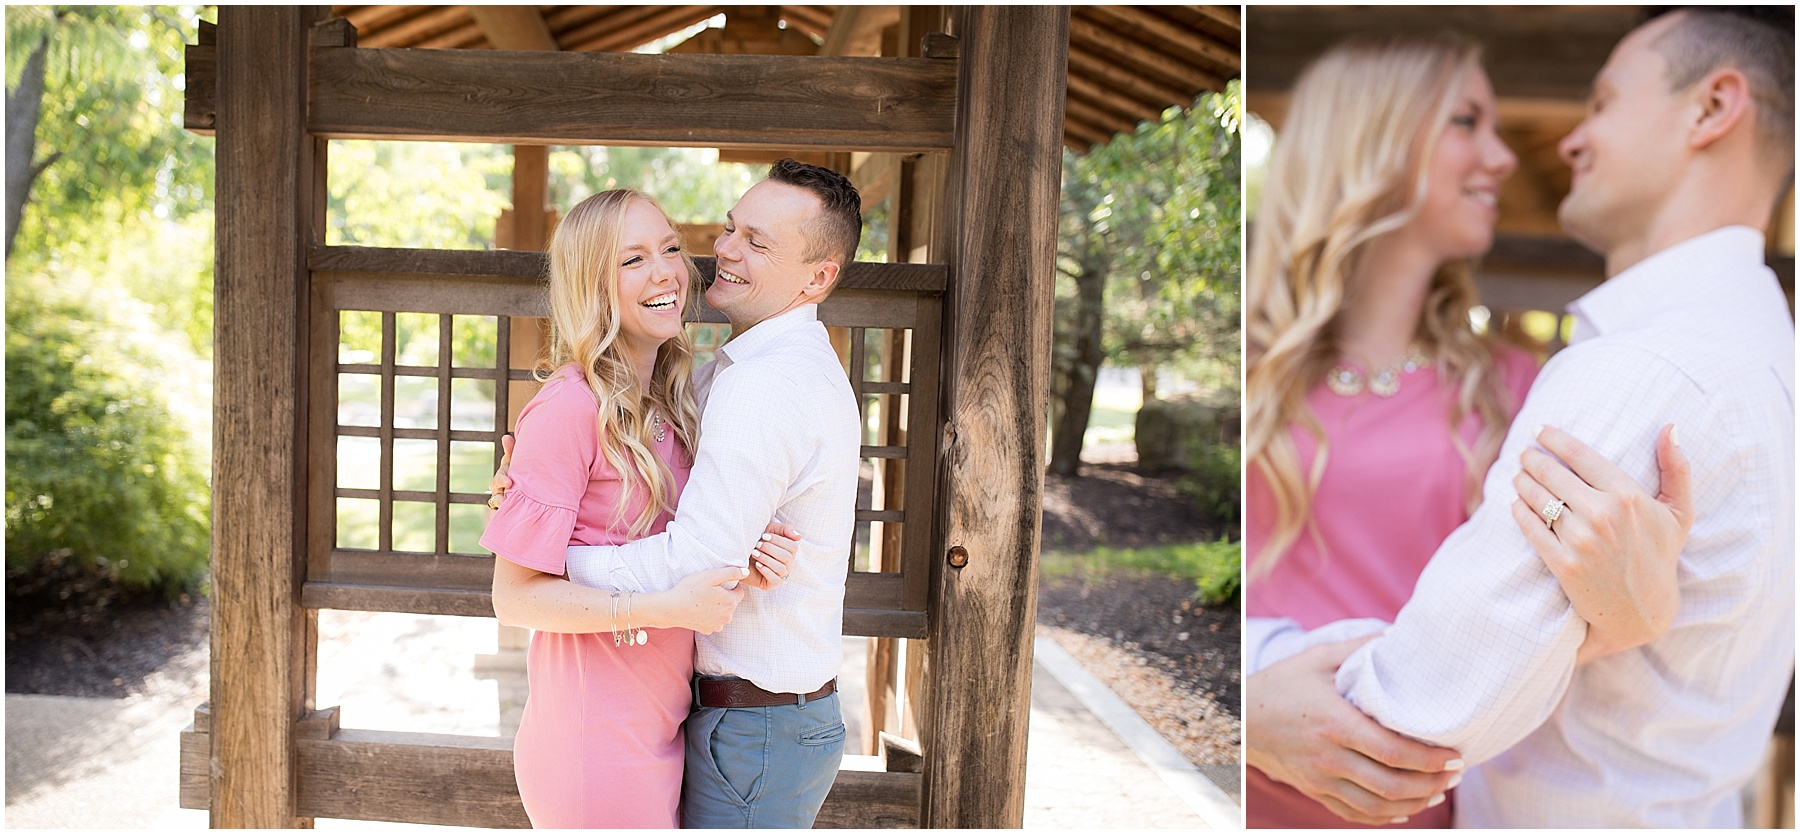 You can never fall in love with someone whom you never laugh with. Indianapolis Engagement Photographer, Raindancer Studios